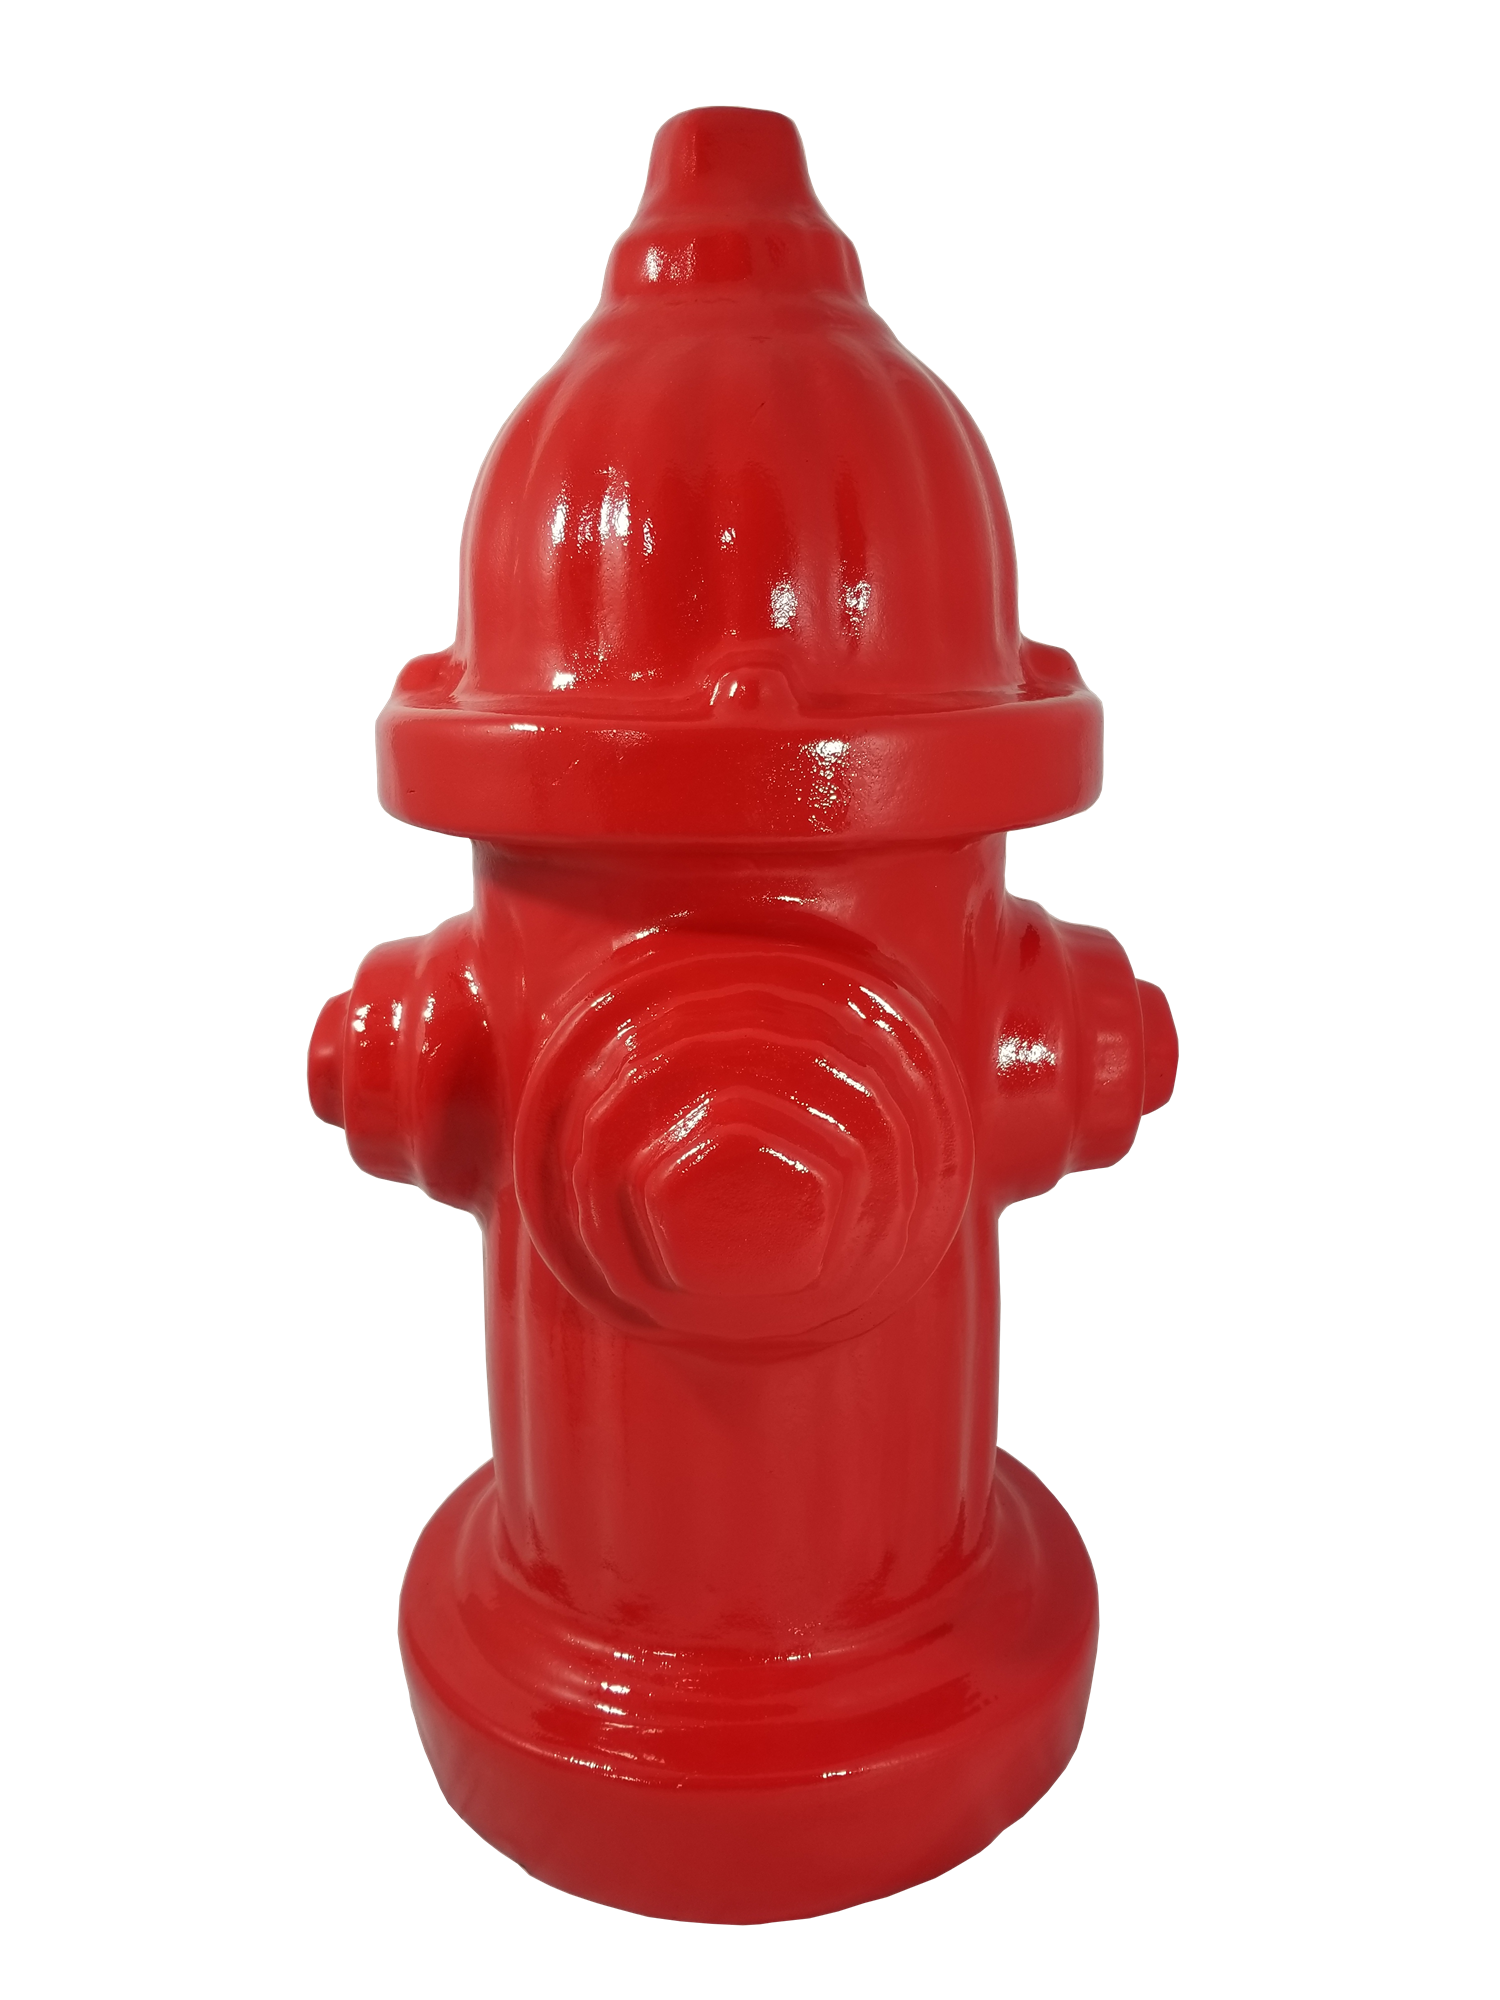 Fire Hydrant PNG File HD PNG Image